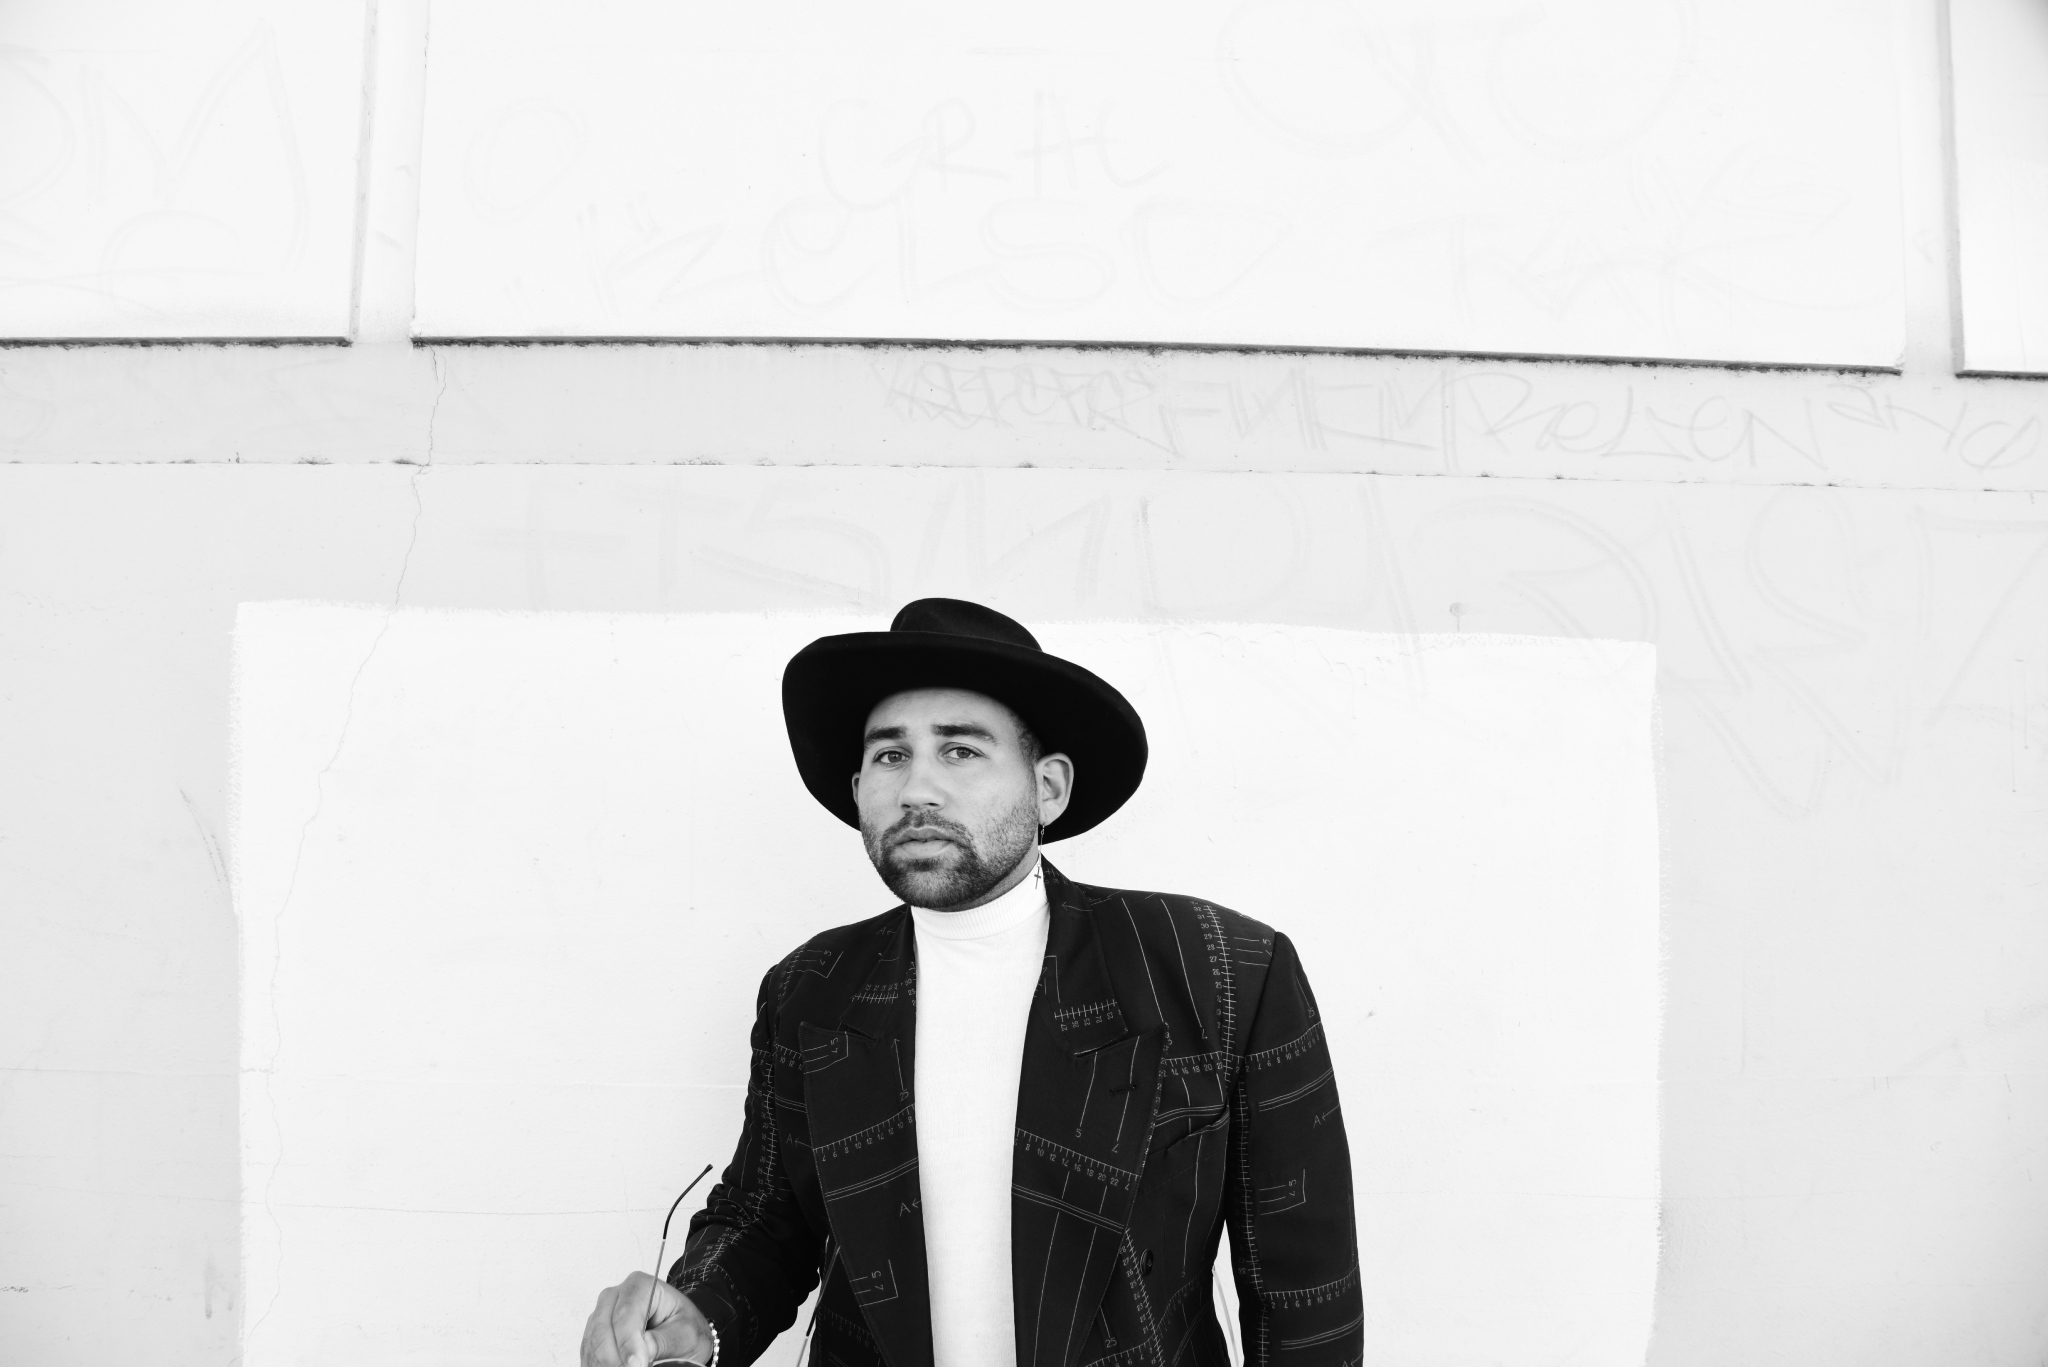 """Parson James on music and more: """"I had to get to a place where I could express myself"""""""